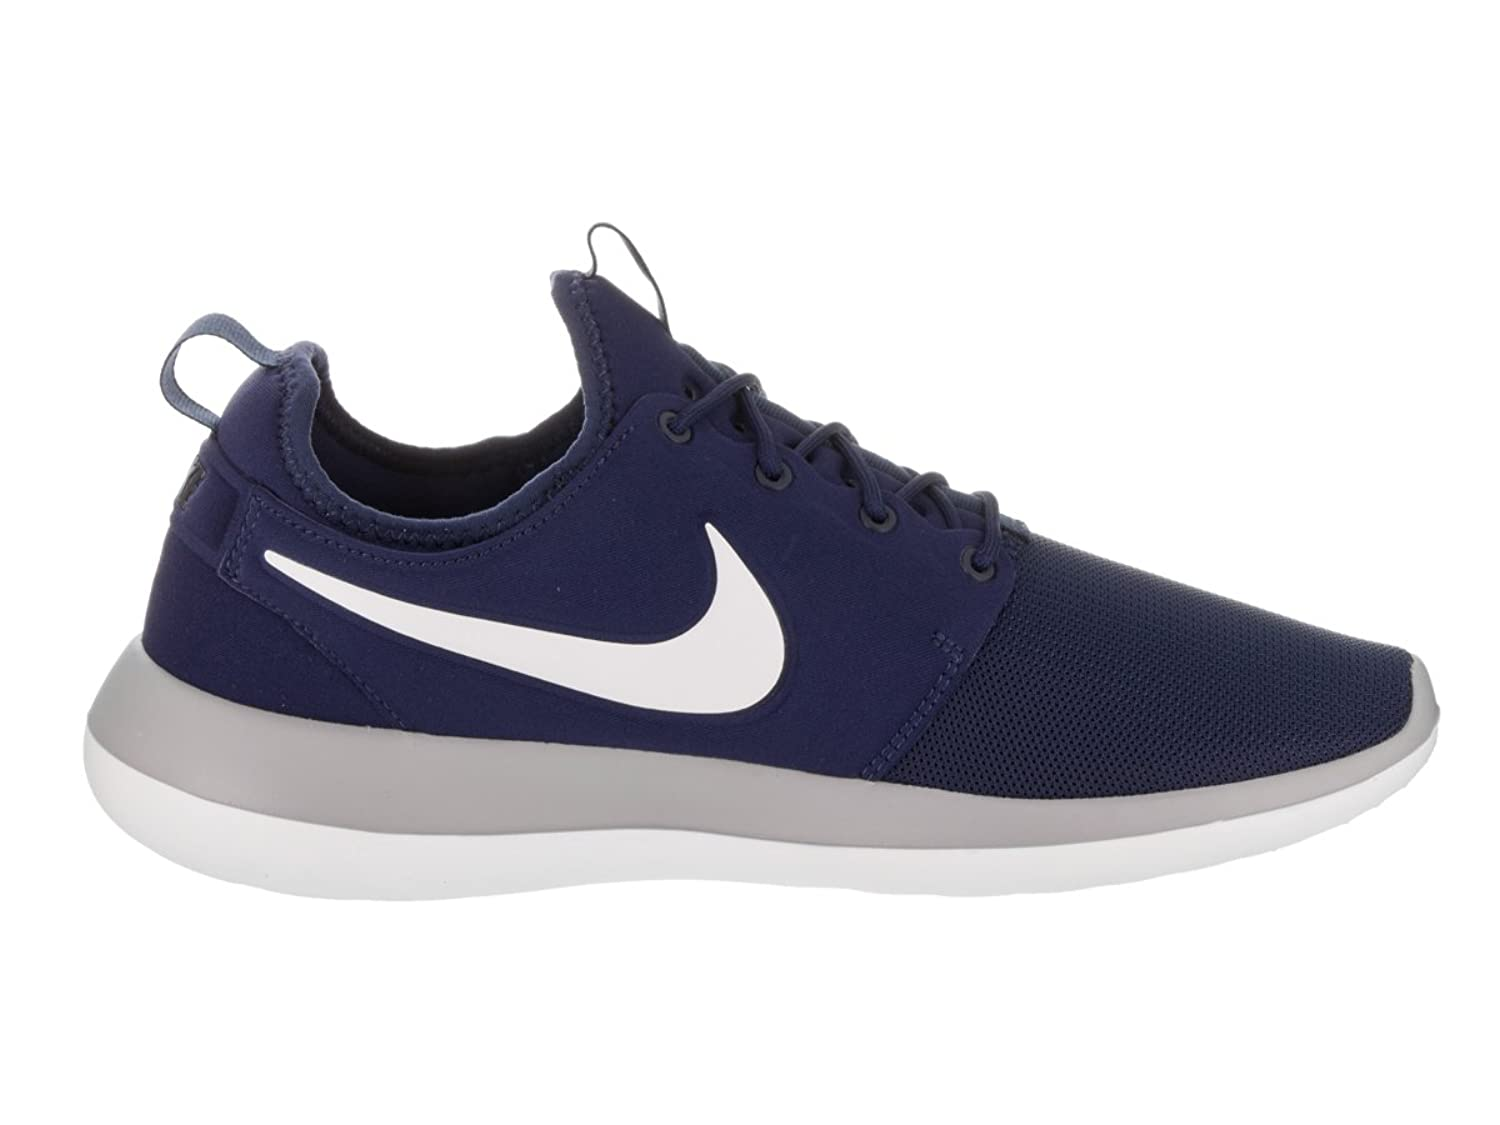 c1f0ab87bfaa reduced amazon nike mens roshe two binary blue white wolf grey running shoe  13 men us